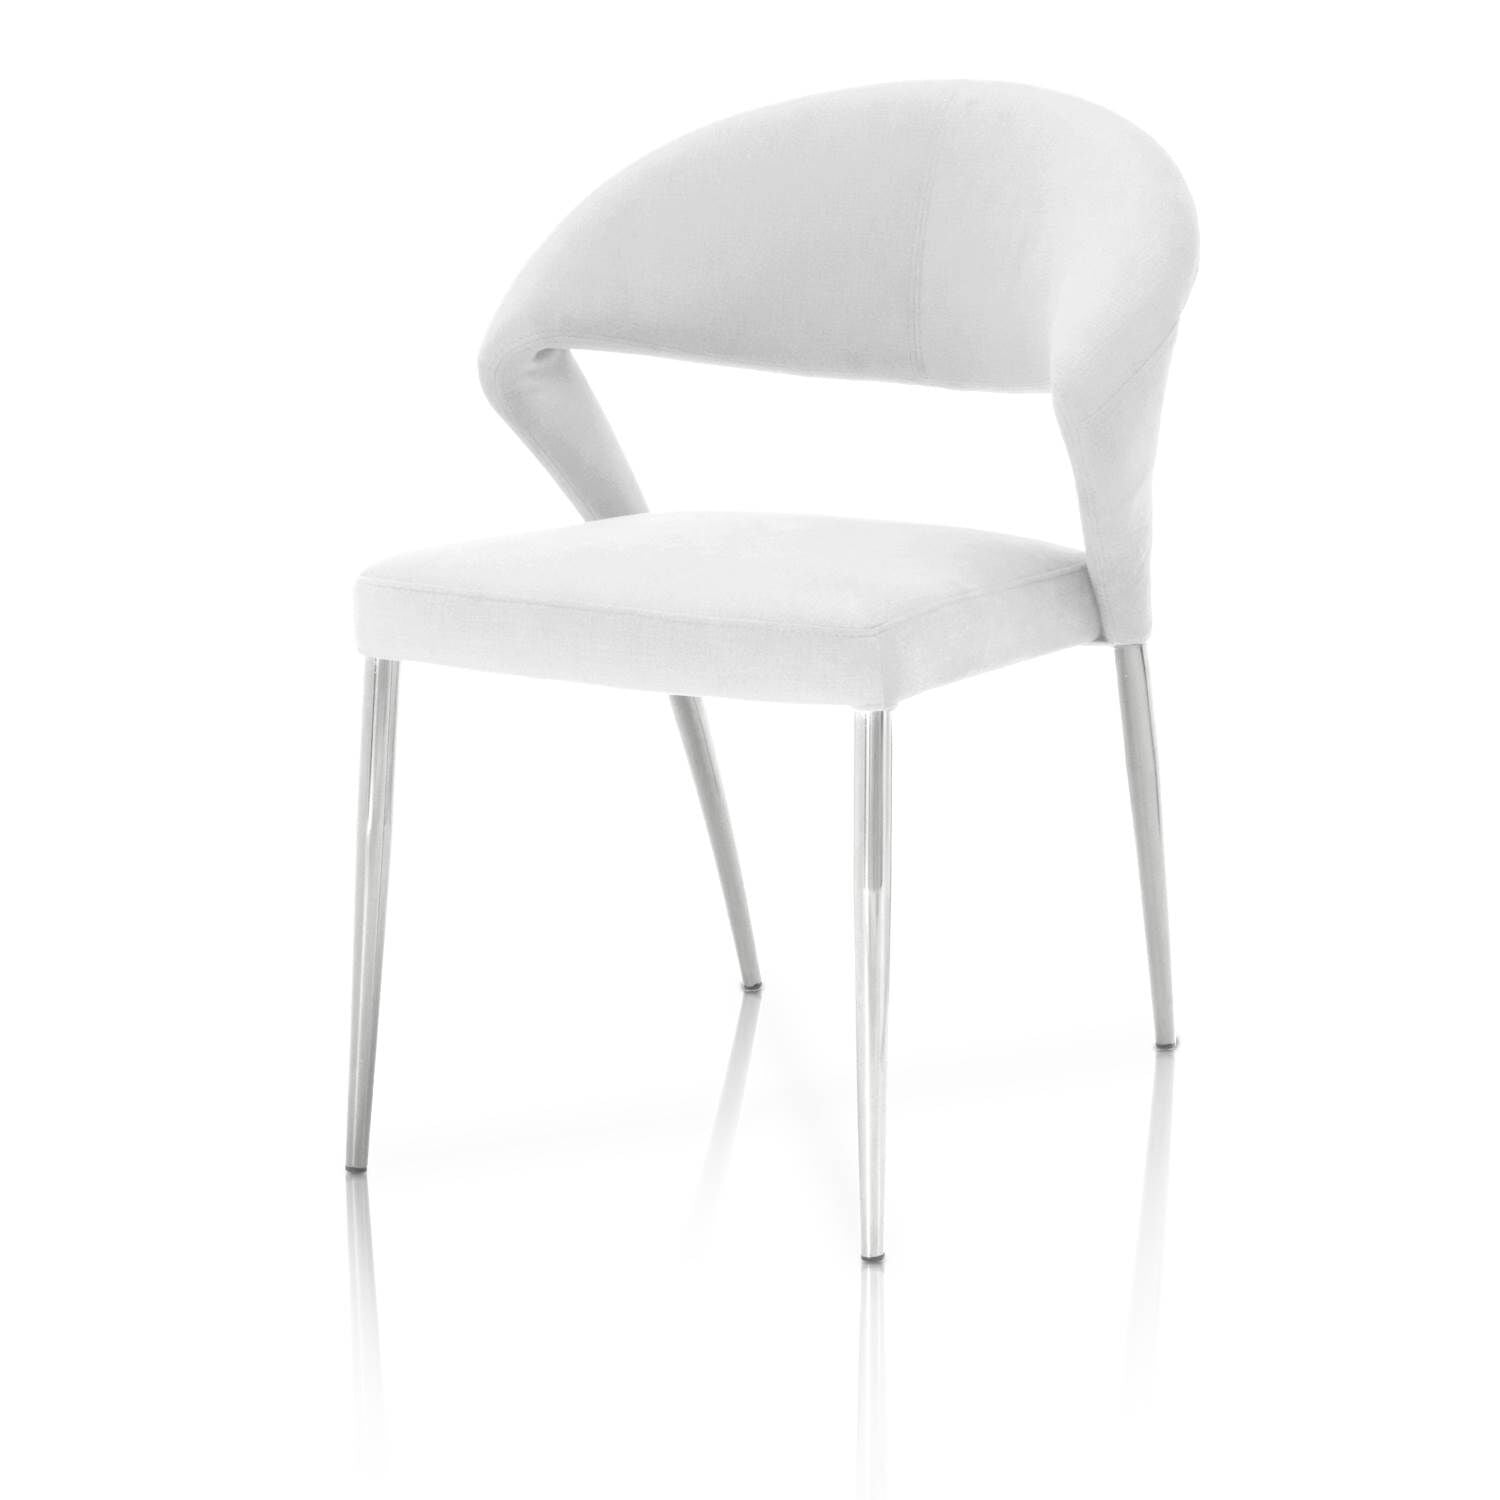 Graceful Conference Chair in White with Chrome Finish (Set of 2)